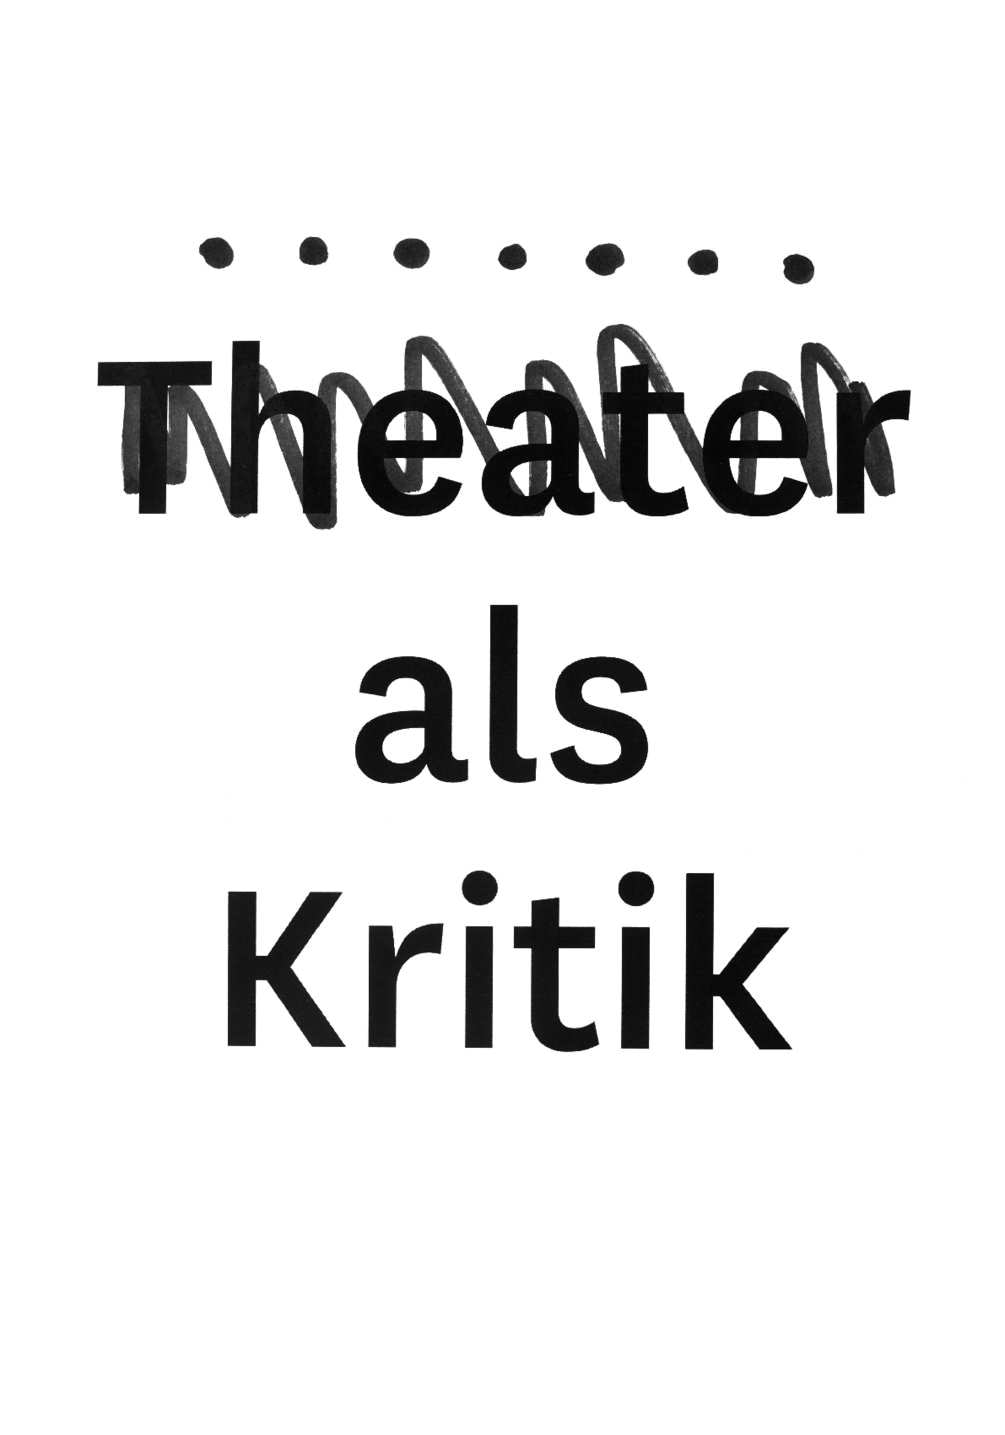 theater-as-critique-slip-24-1005x1435px